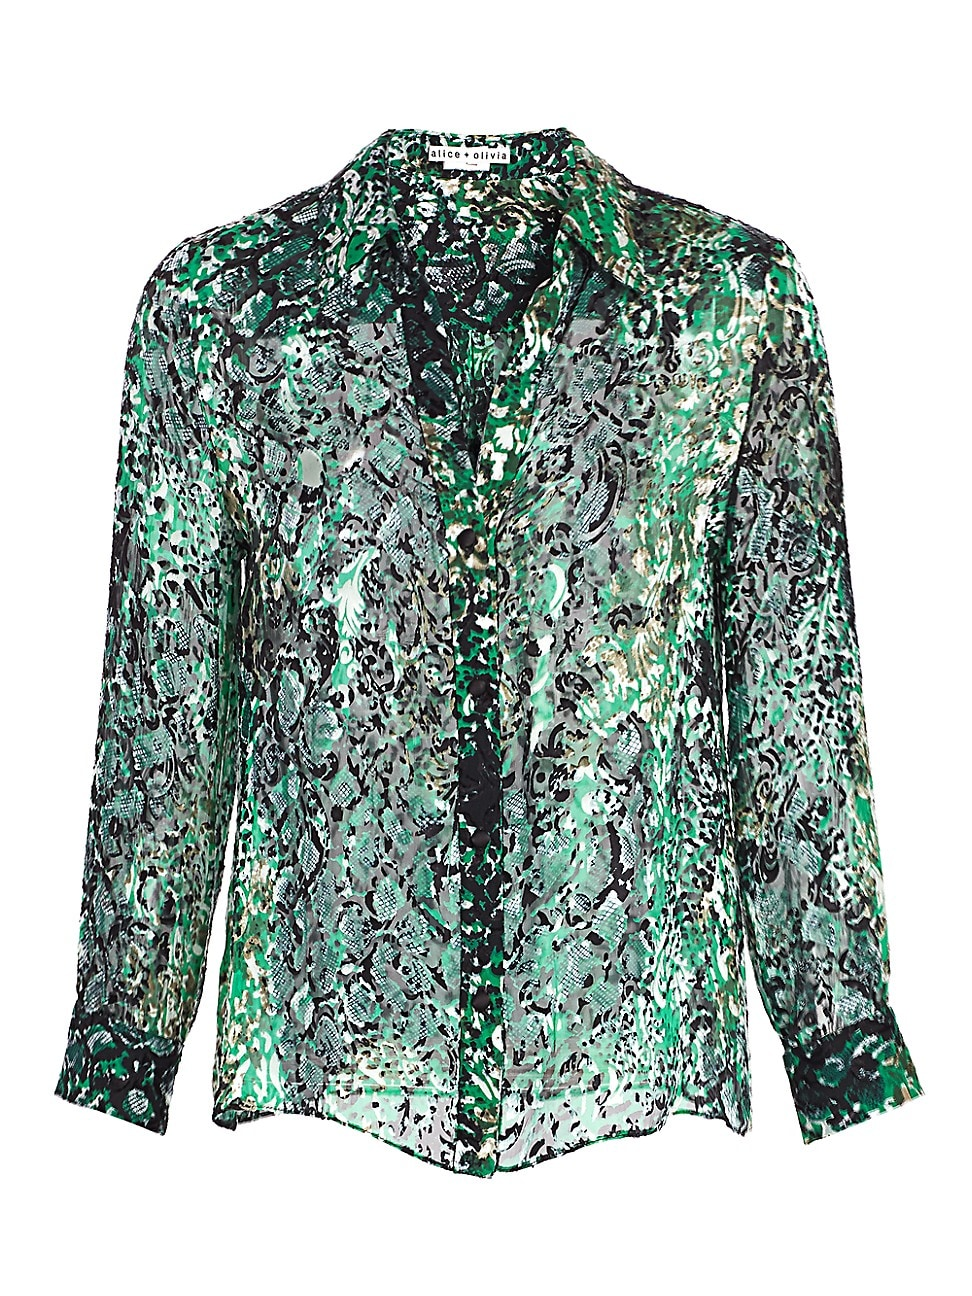 ALICE AND OLIVIA WOMEN'S ELOISE ANIMAL-PRINT SILK BLOUSE